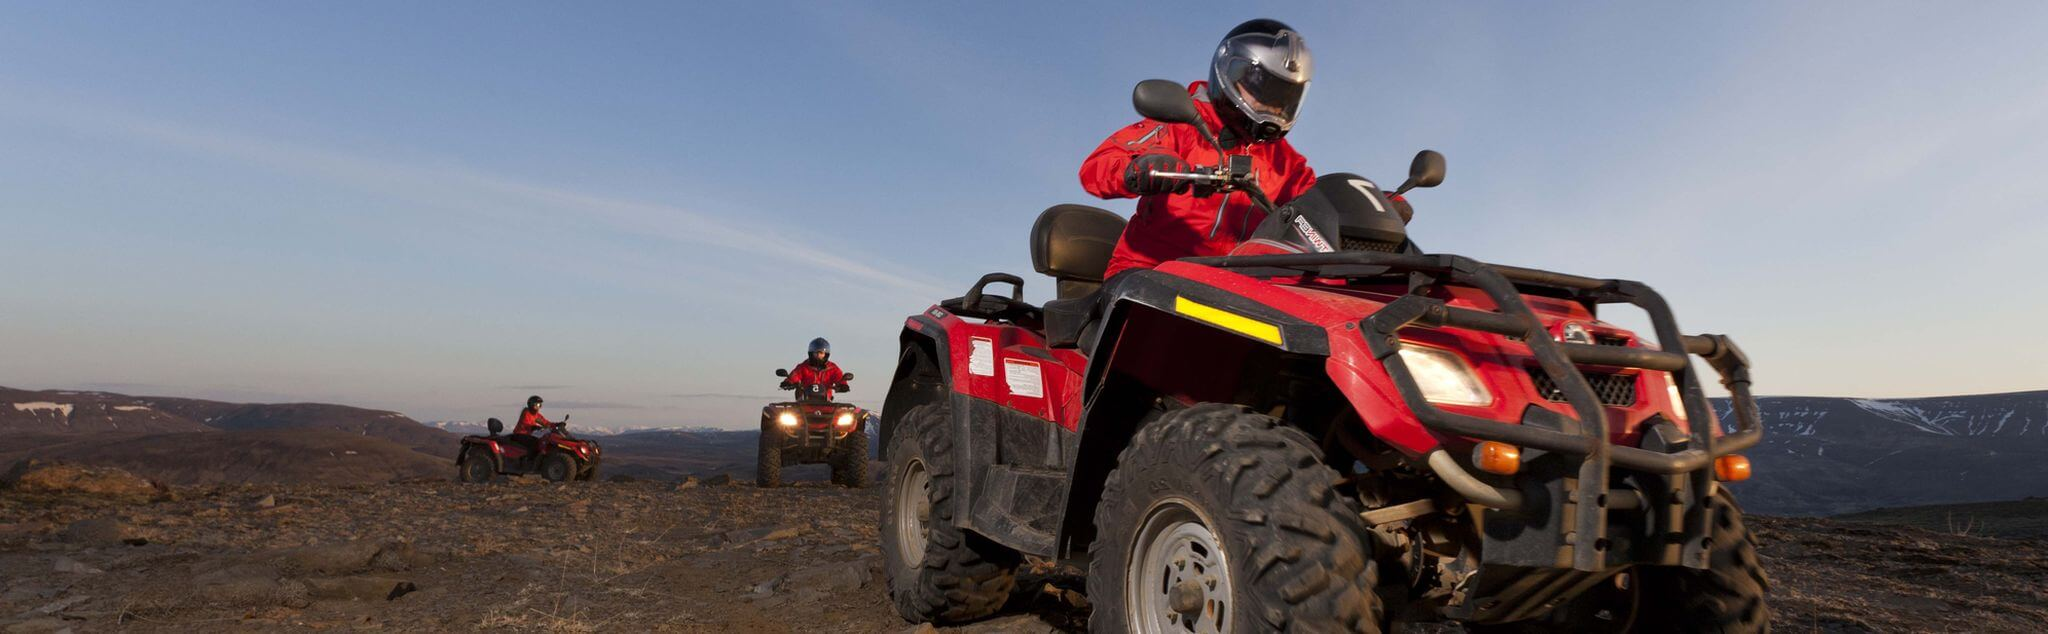 Quad Biking in Málaga